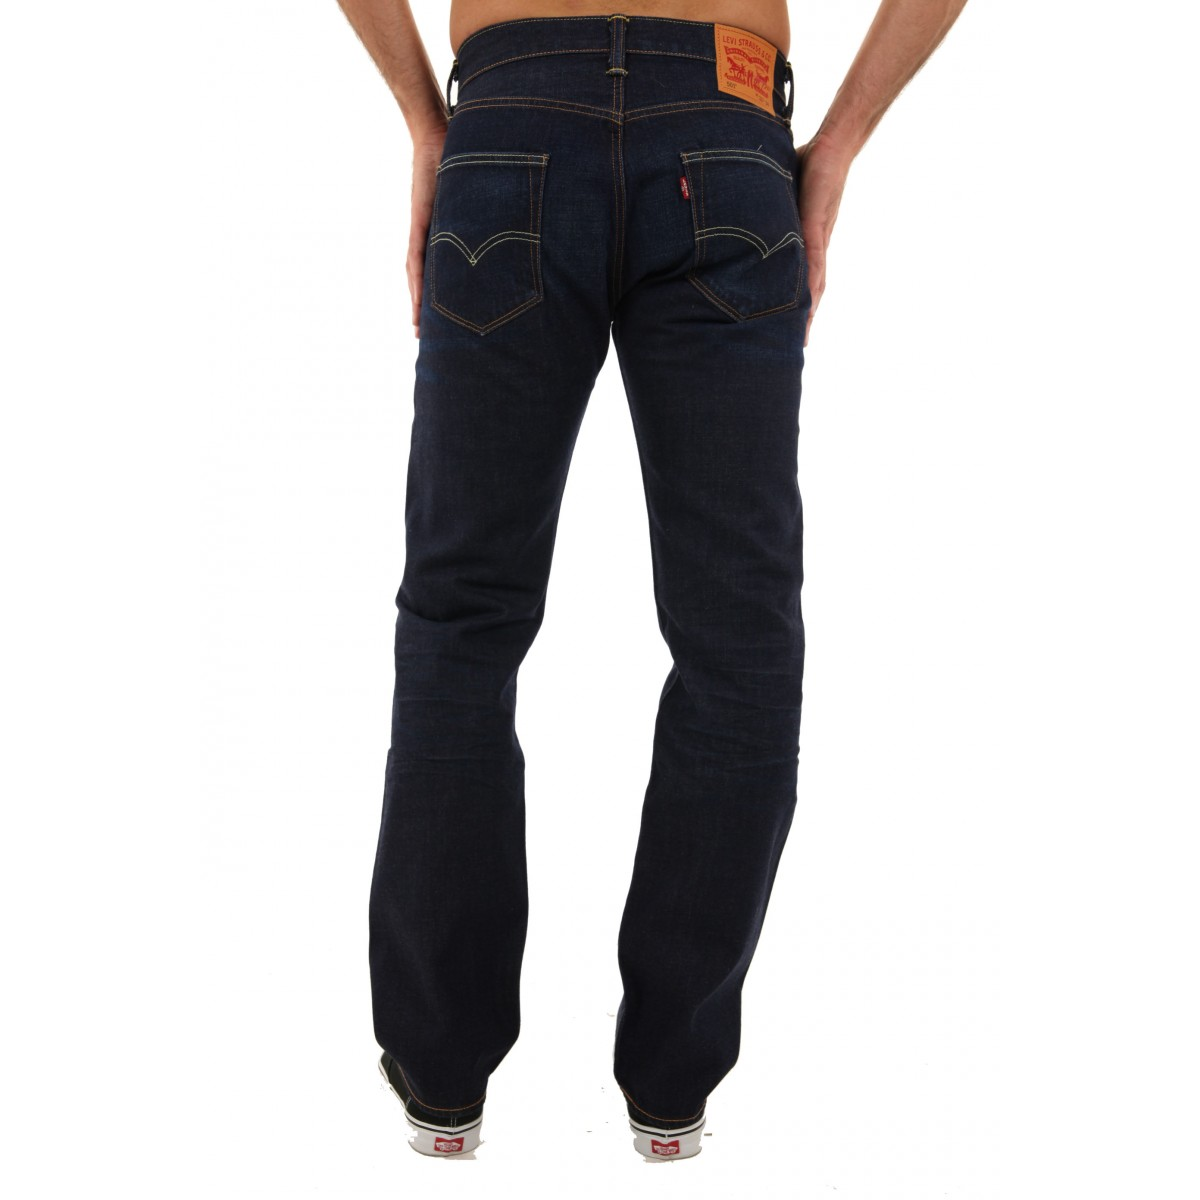 New Levis 501 Jeans Authentic Button Fly Mens Classic Fit ...